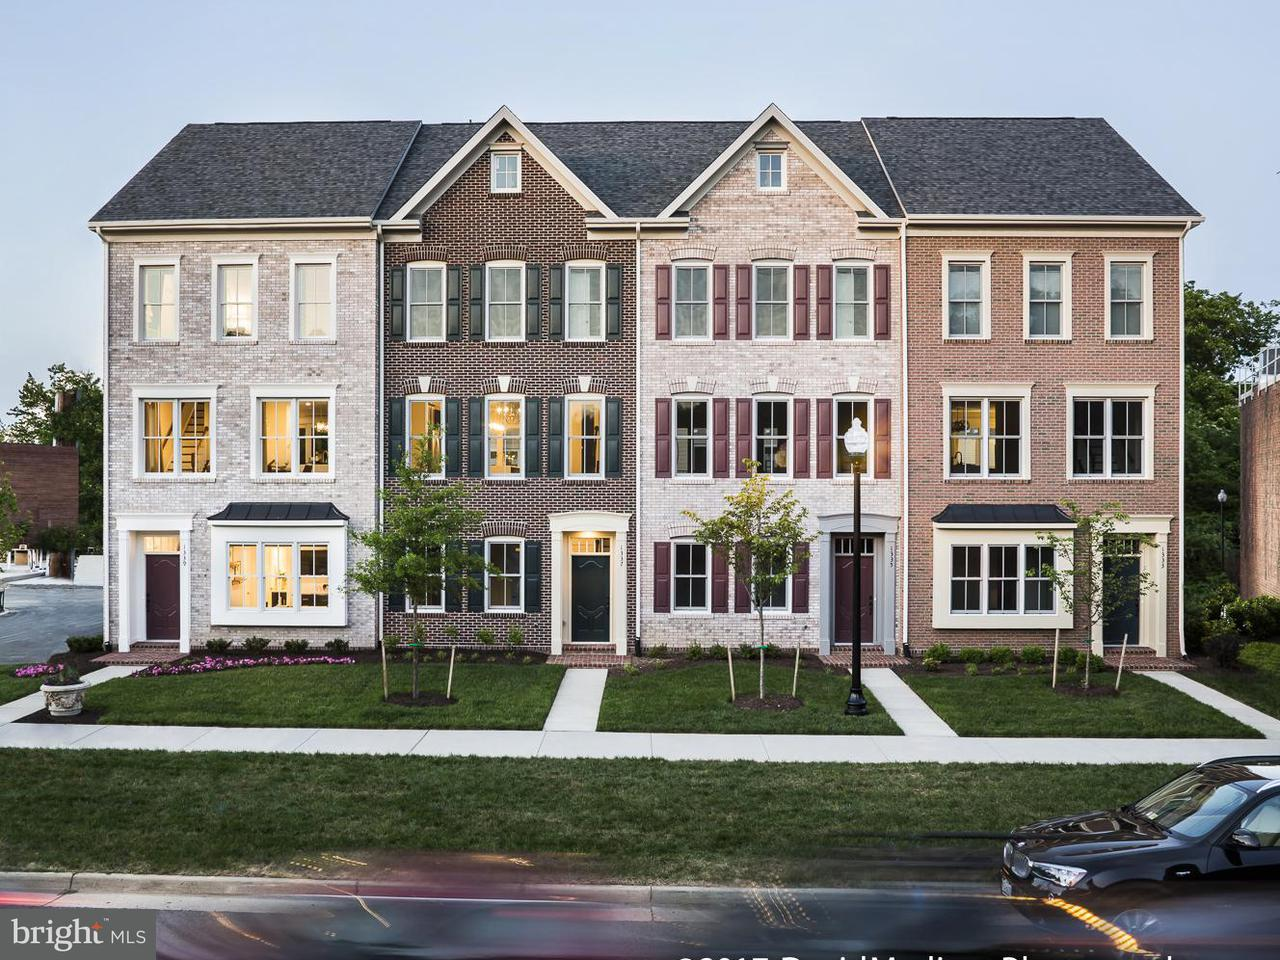 Townhouse for Sale at 1369 Powhatan St #Lot 3 1369 Powhatan St #Lot 3 Alexandria, Virginia 22314 United States